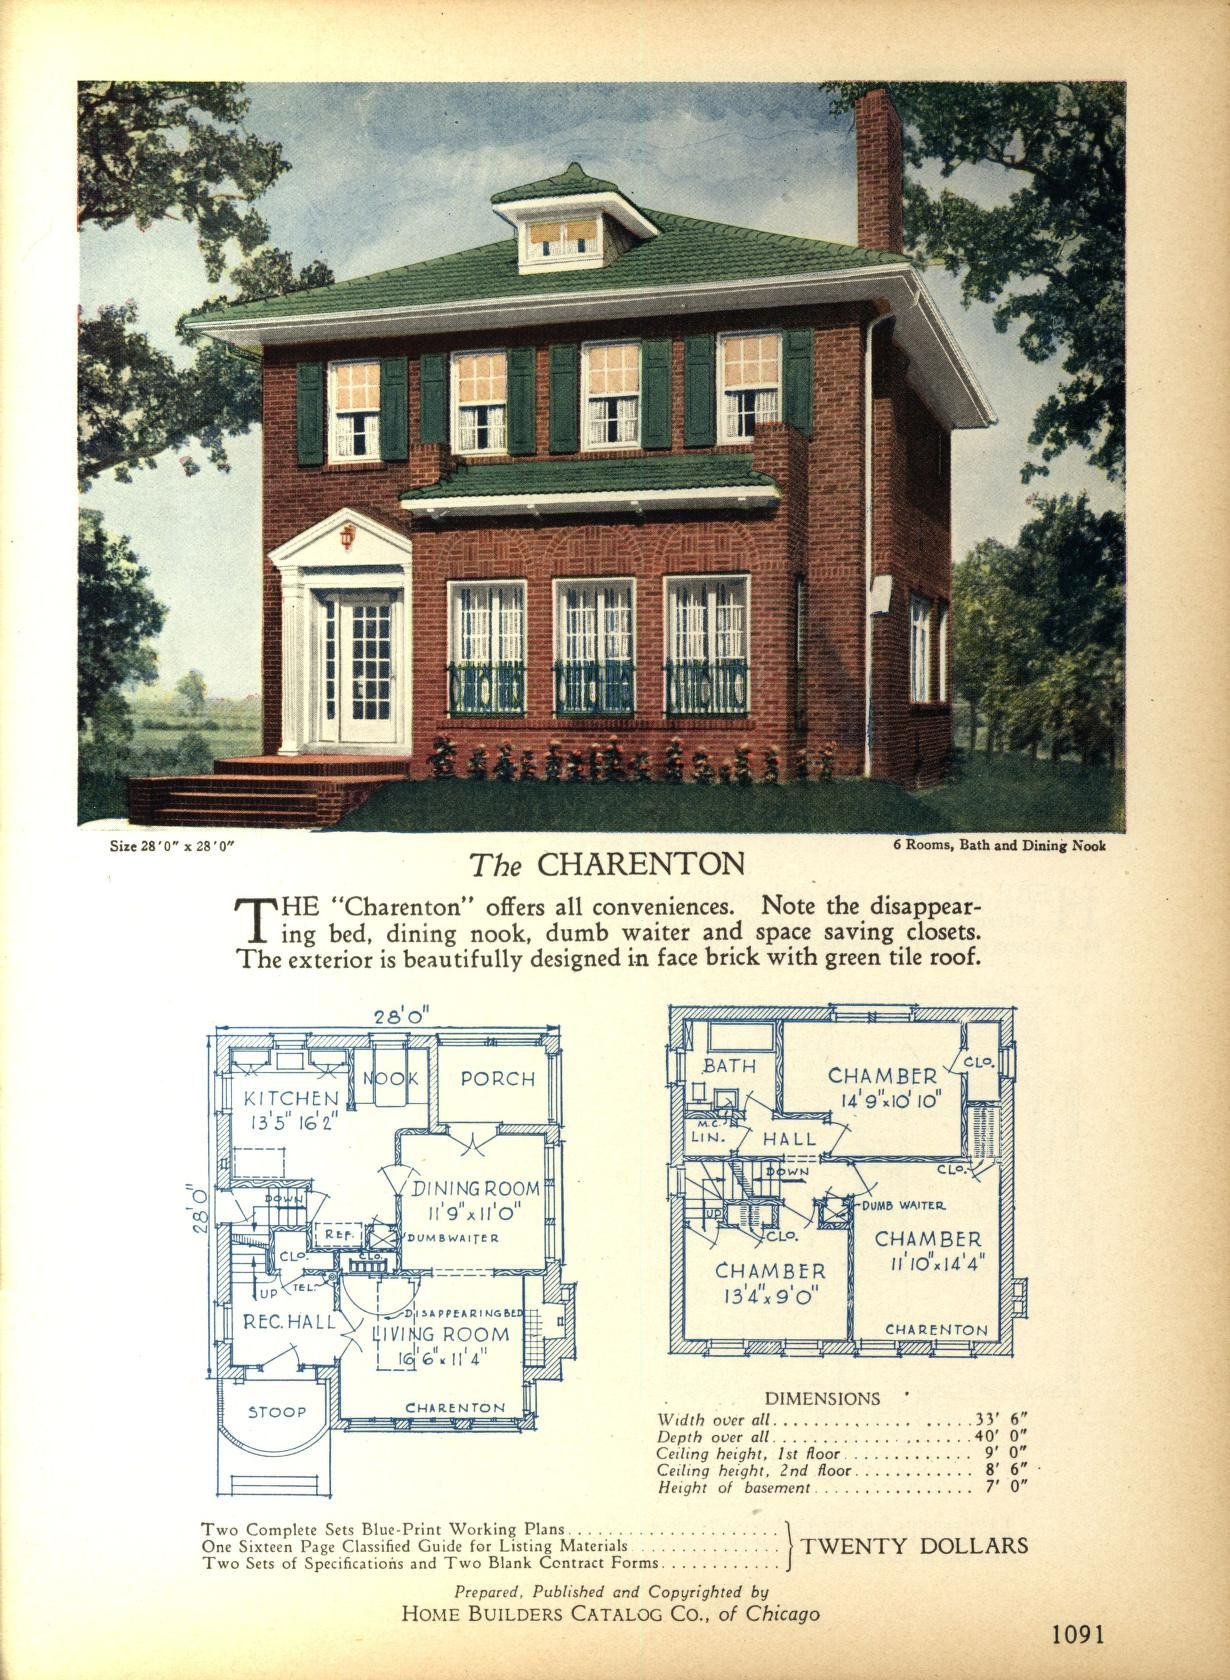 The CHARENTON   Home Builders Catalog: Plans Of All Types Of Small Homes By Home  Builders Catalog Co. Published 1928